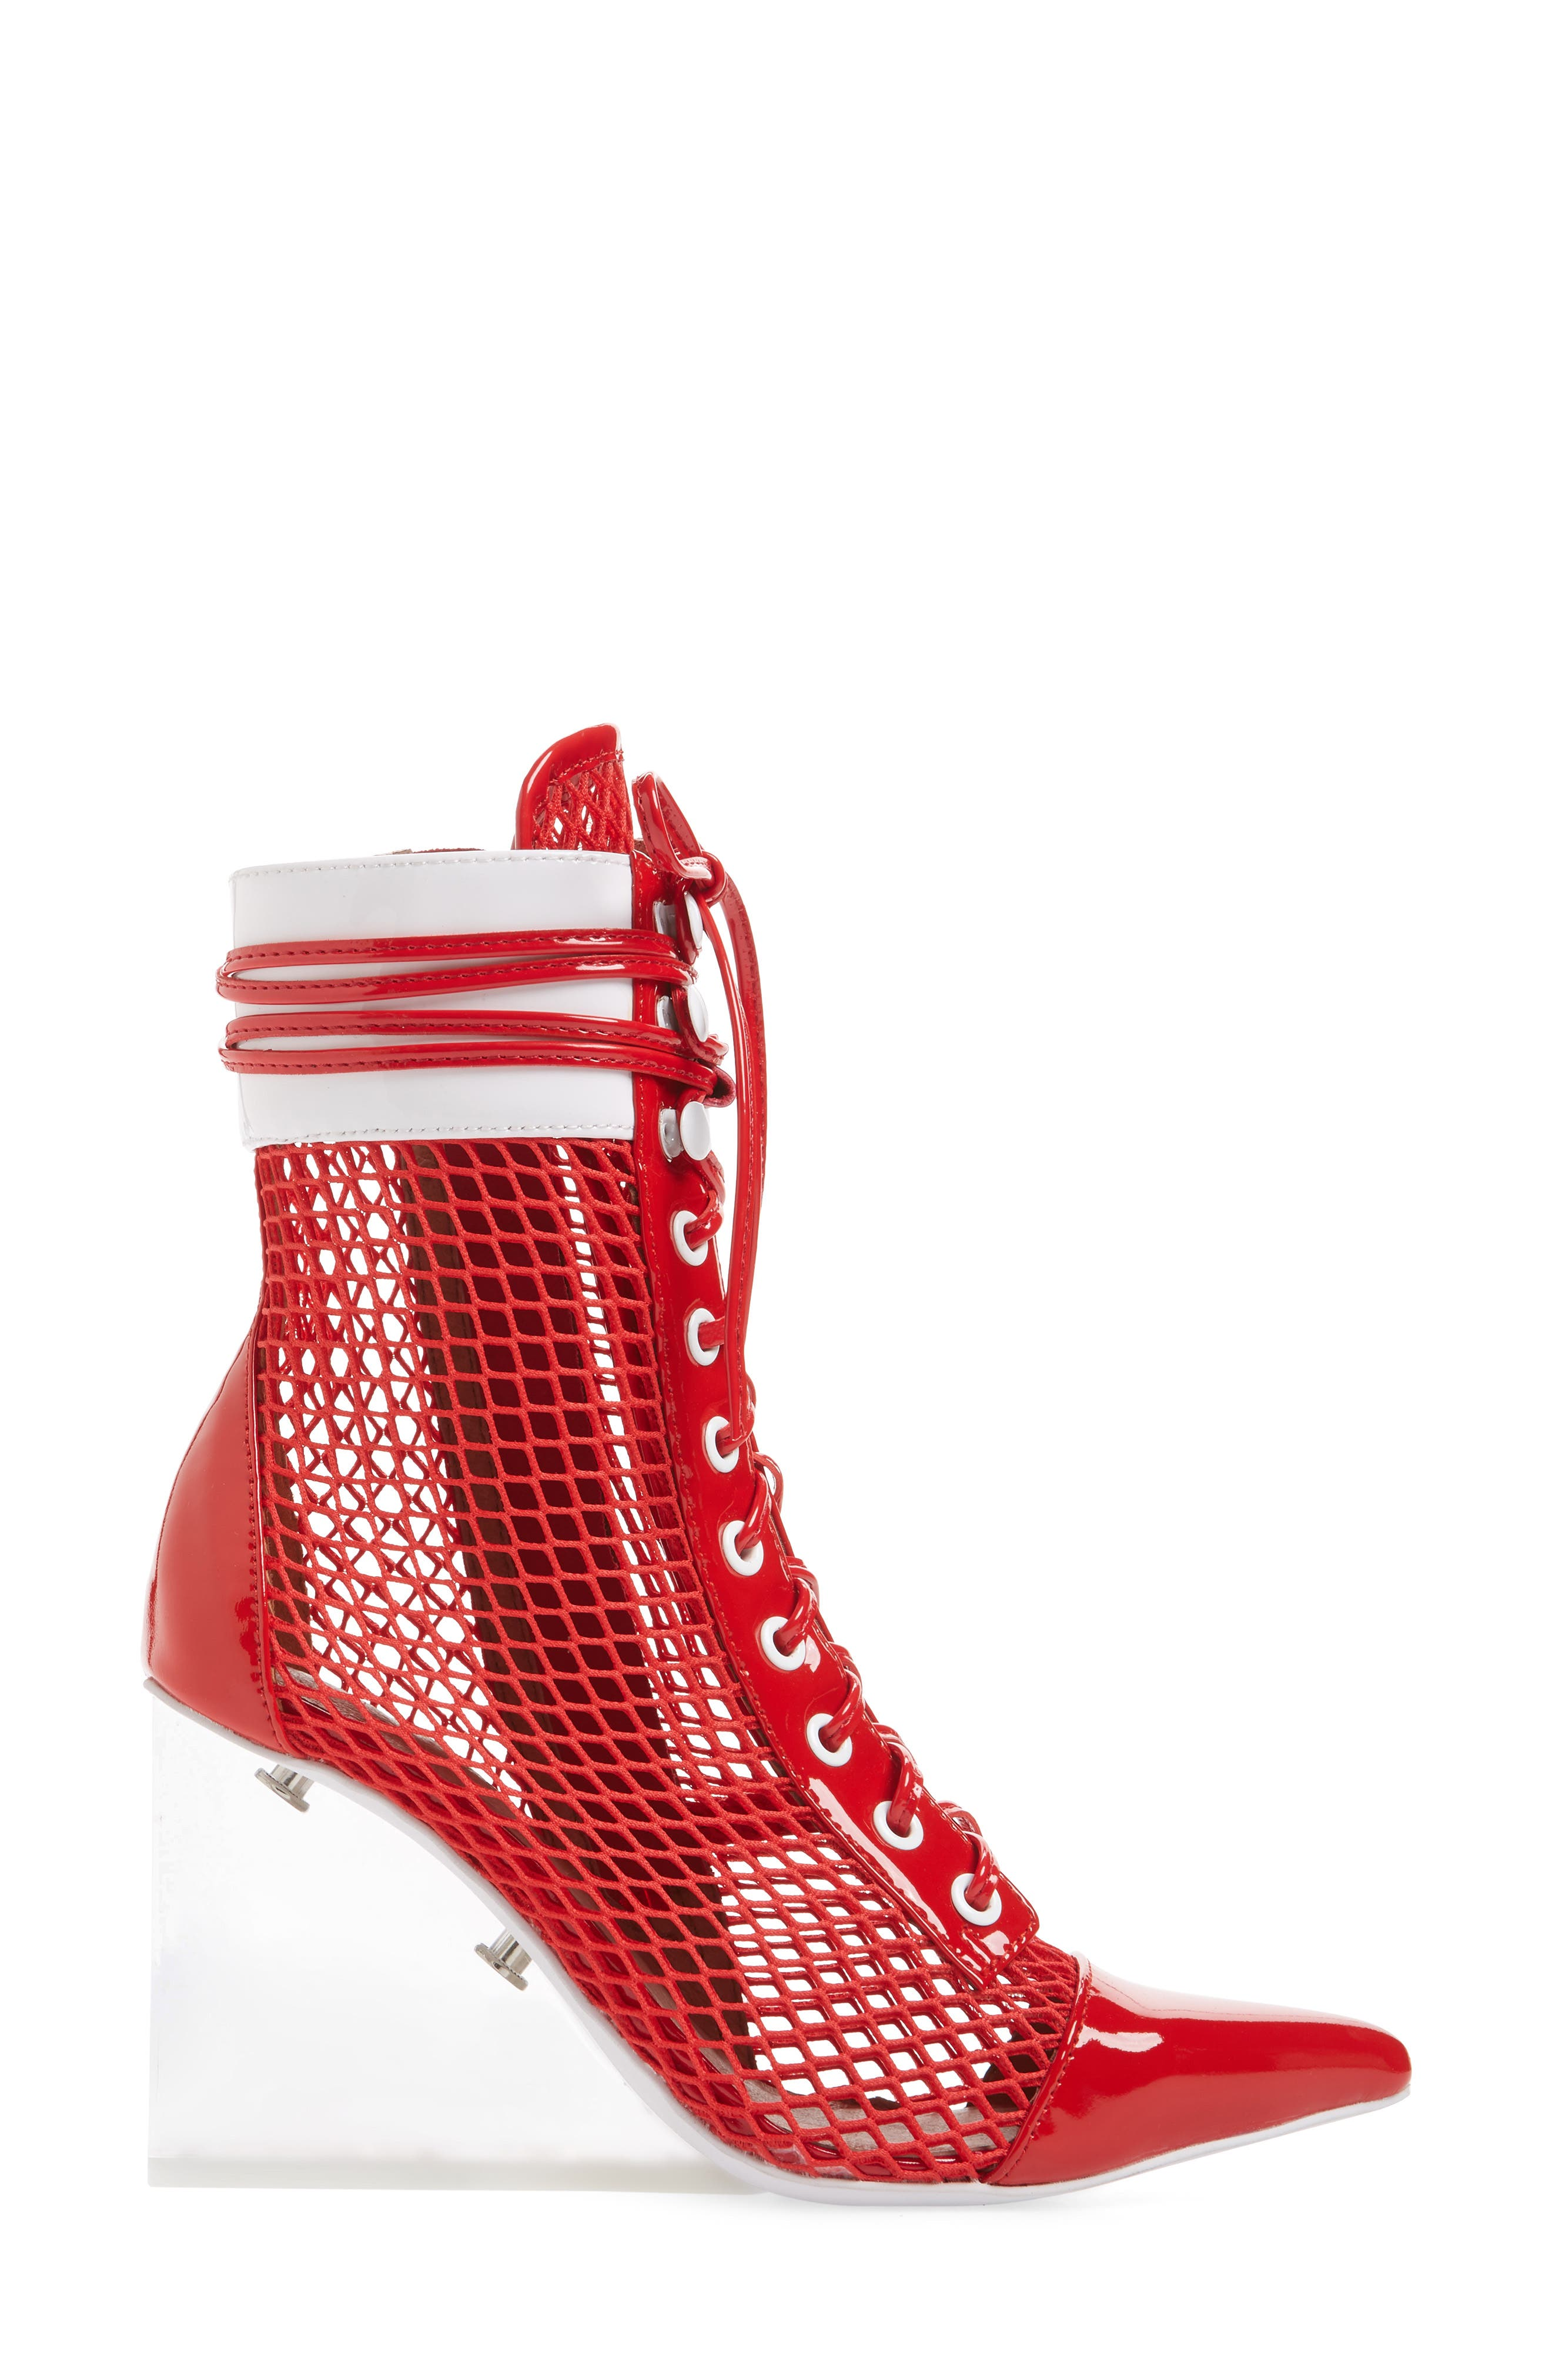 Cardi Mesh Bootie,                             Alternate thumbnail 3, color,                             Red/ White/ Clear